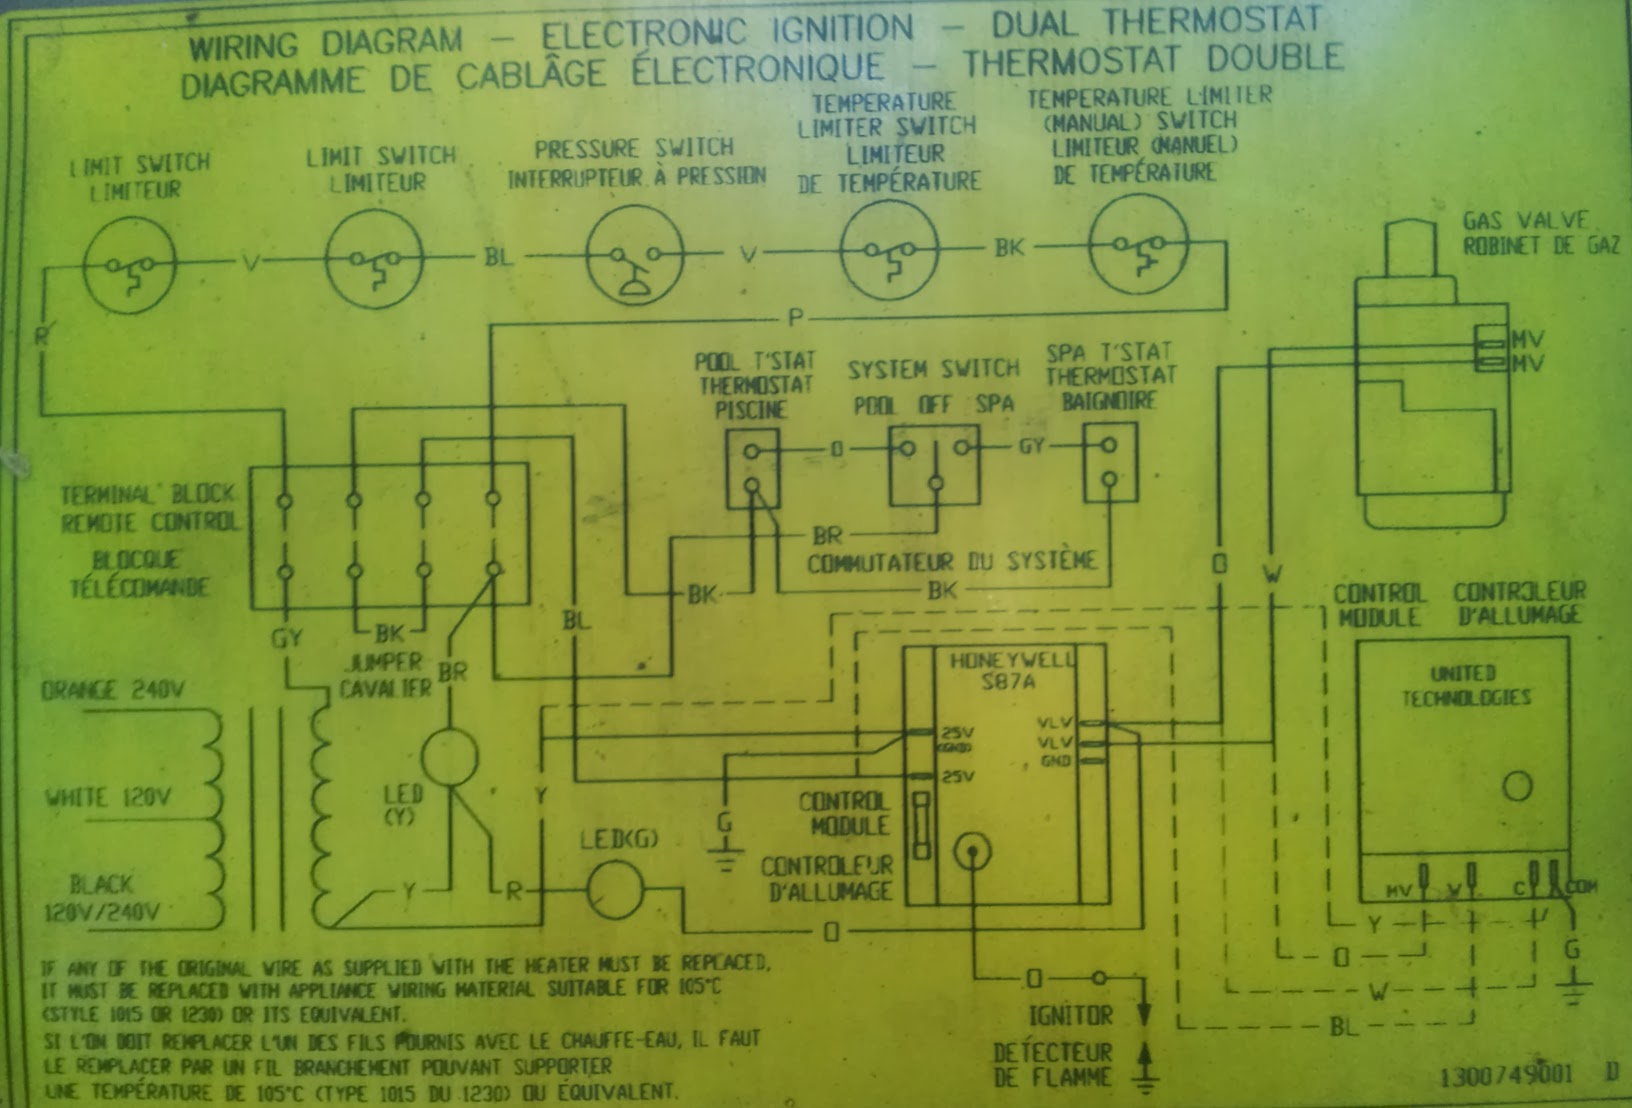 hayward h250 ed1 pool heater electronic ignition dr terrible s wiring diagram